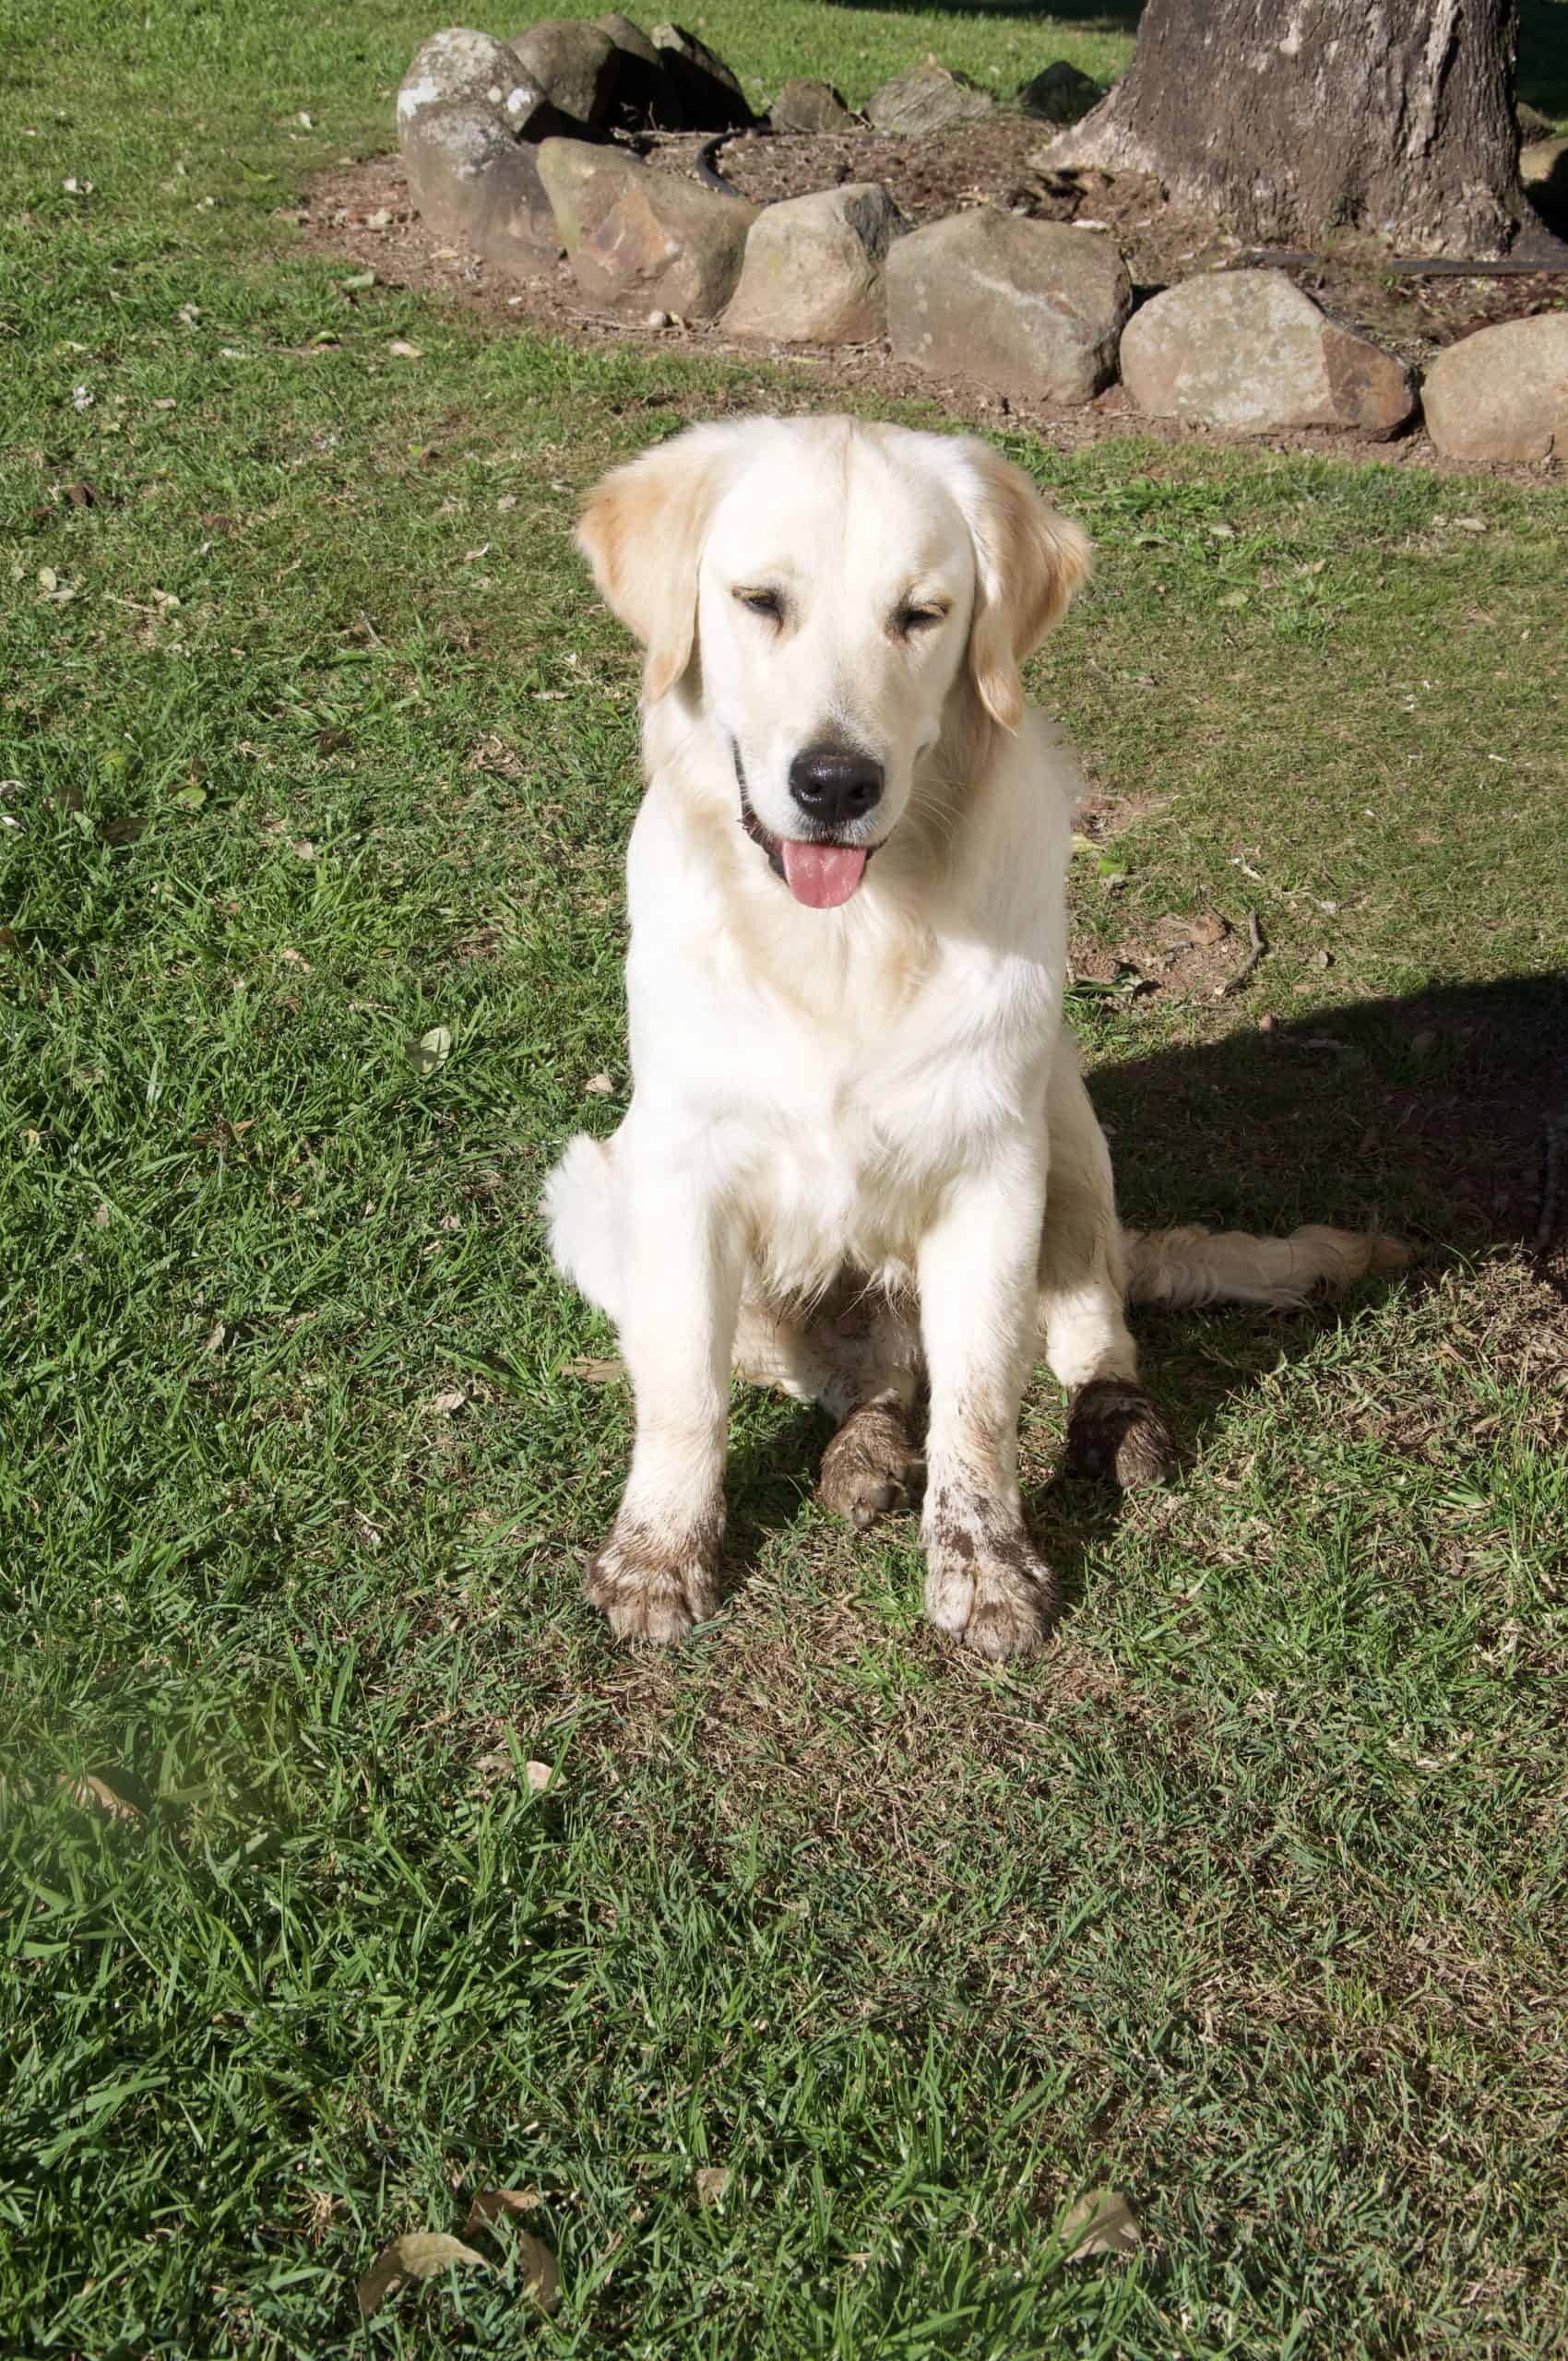 Cooper the golden retriever pup with very dirt paws after digging holes